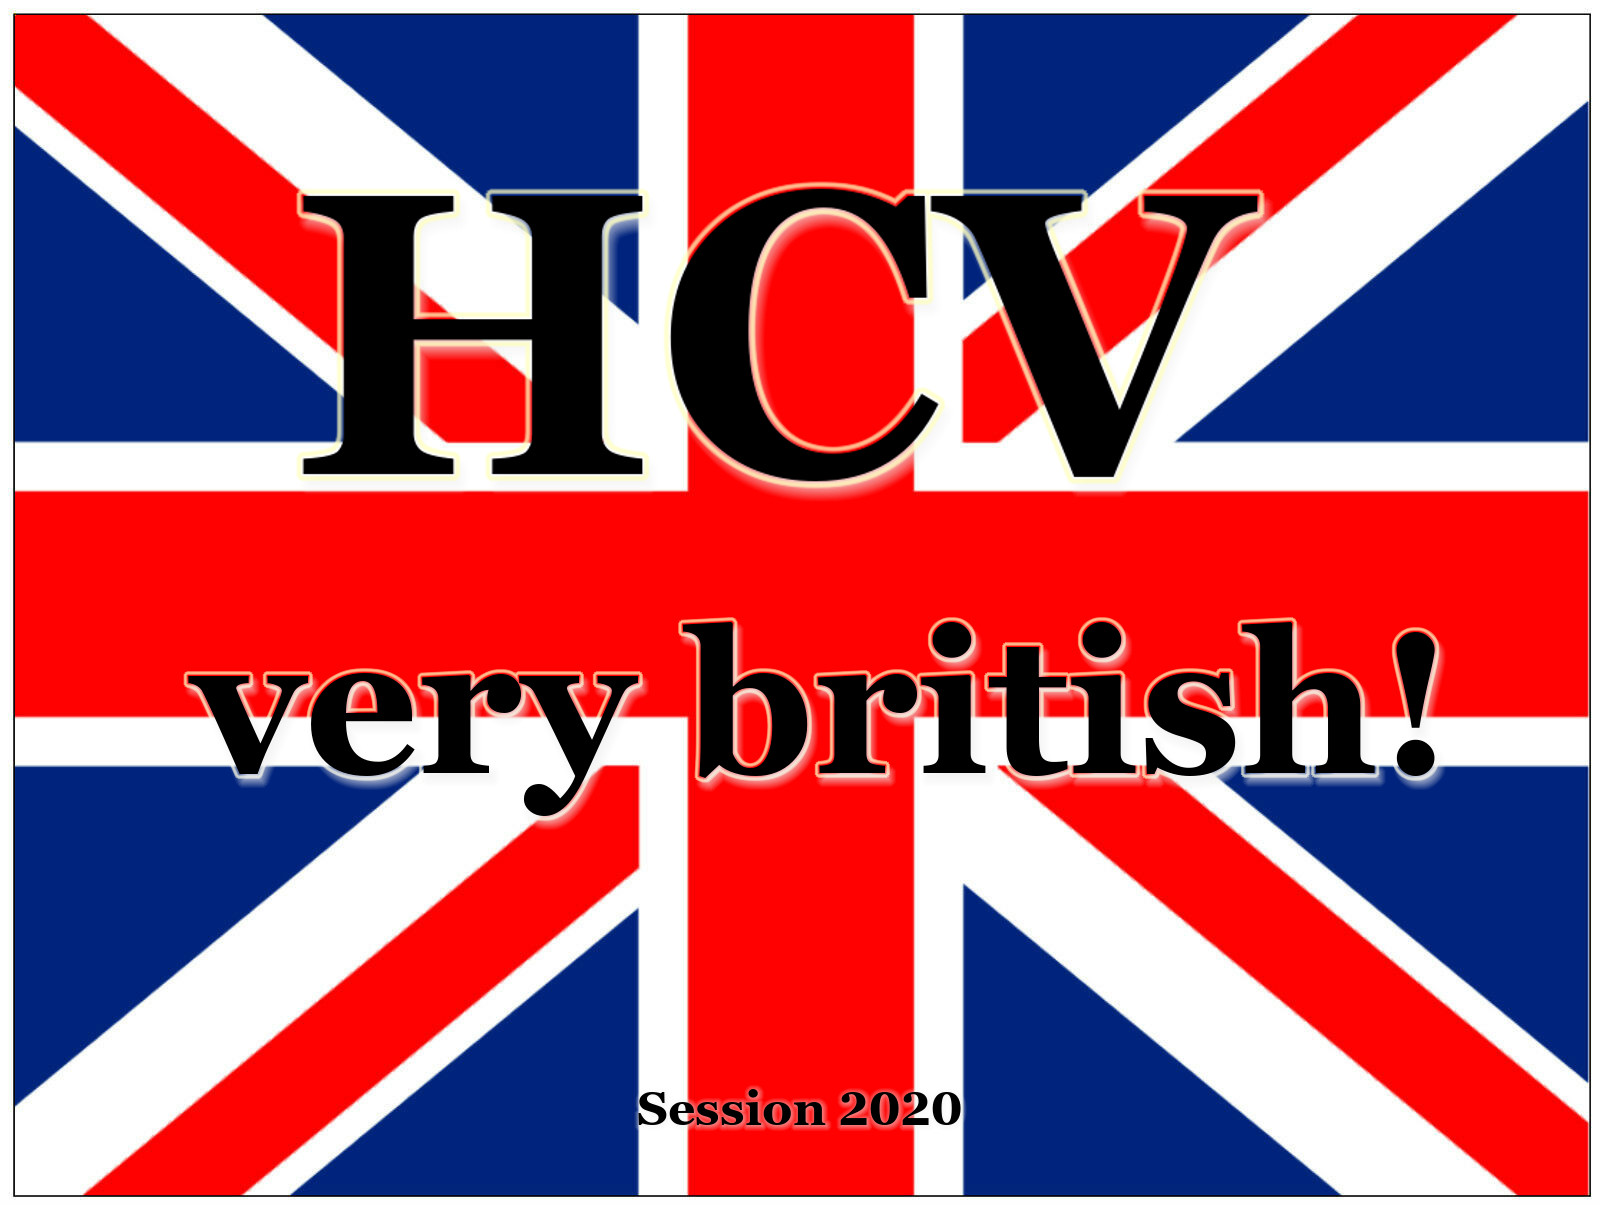 HCV - very british!